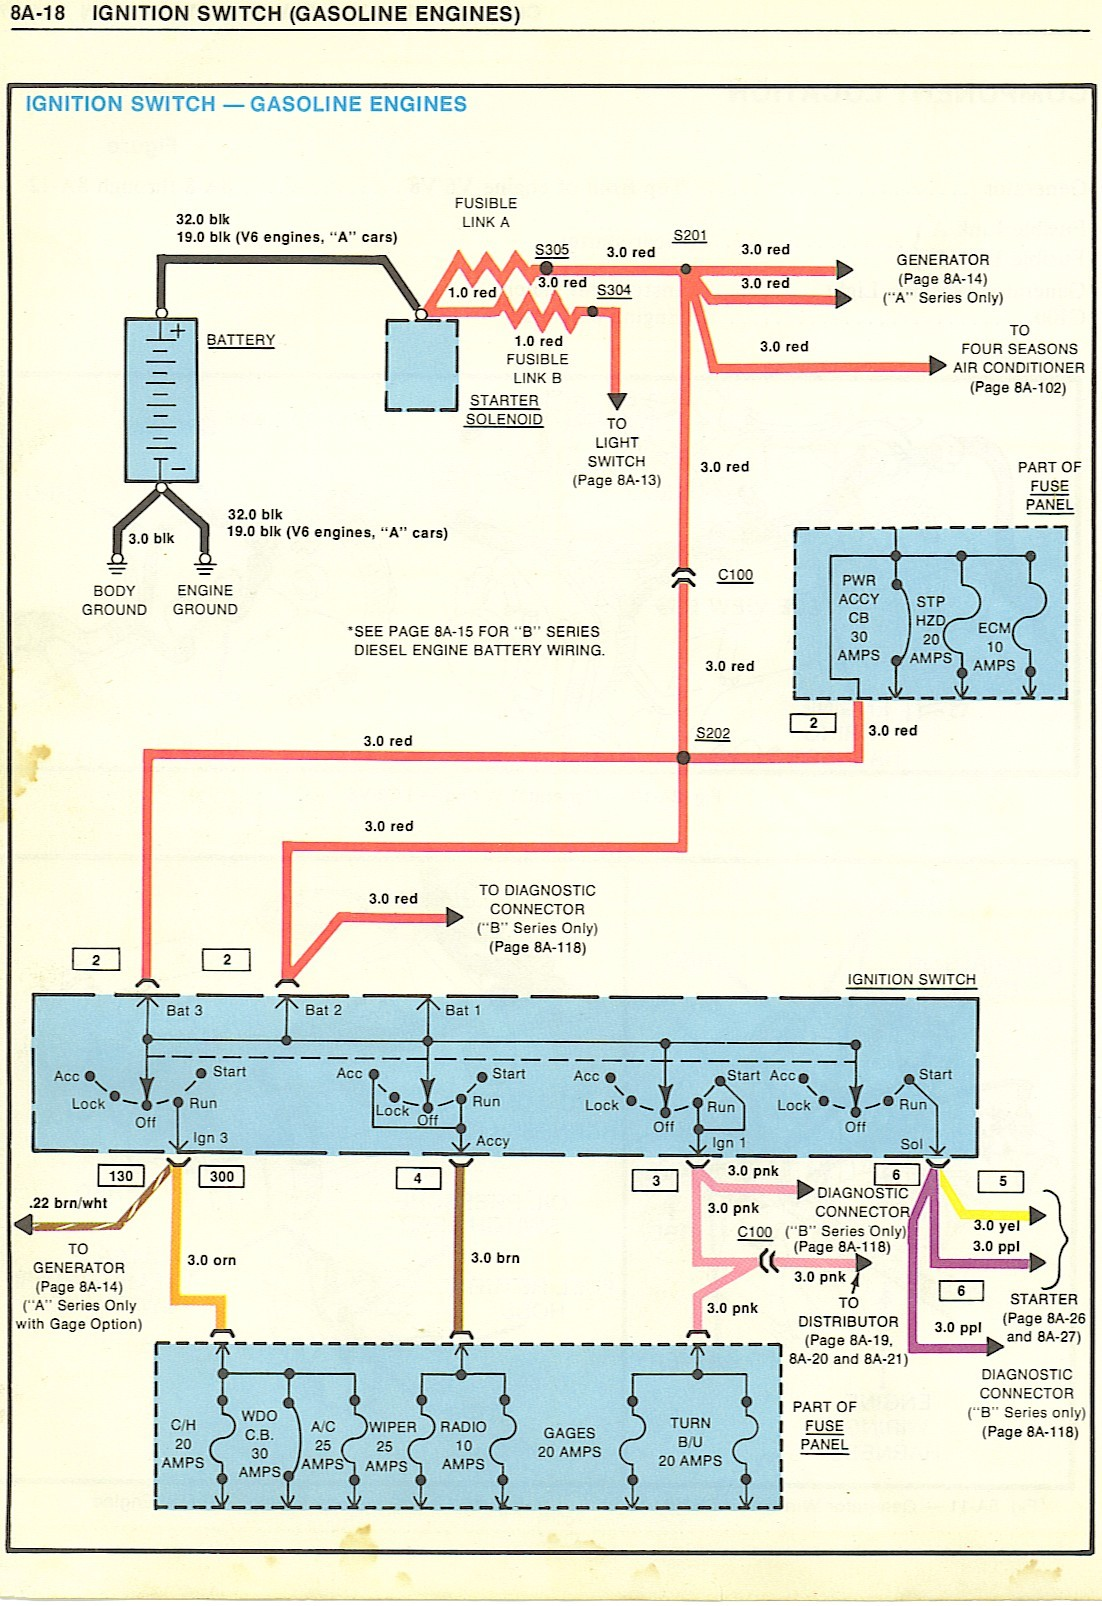 1972 Chevy Truck Ignition Switch Wiring Diagram